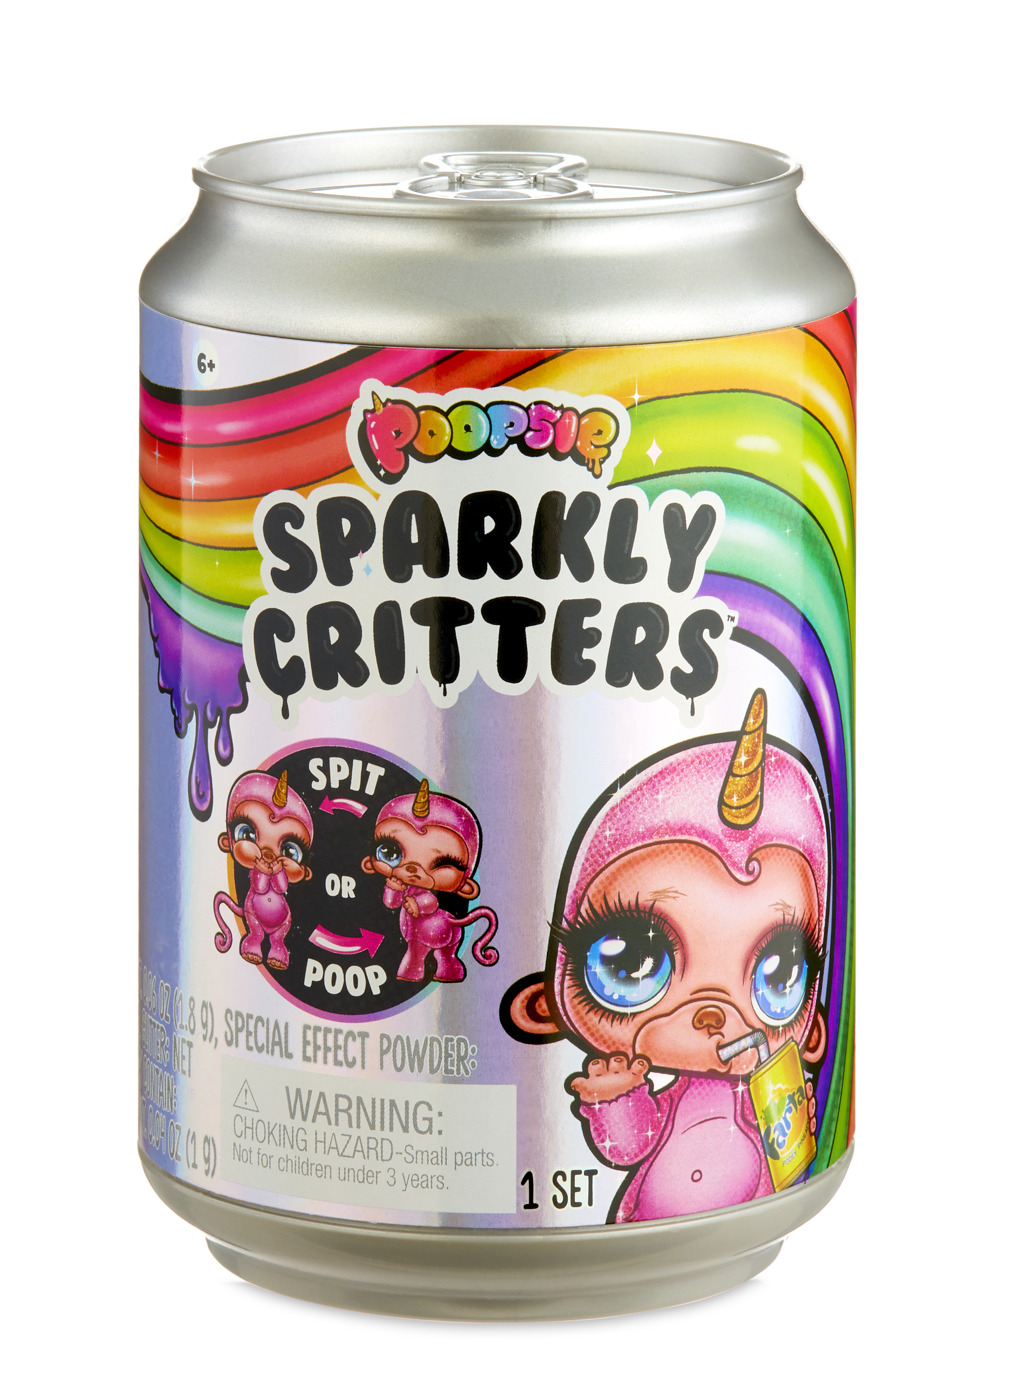 Poopsie Sparkly Critters